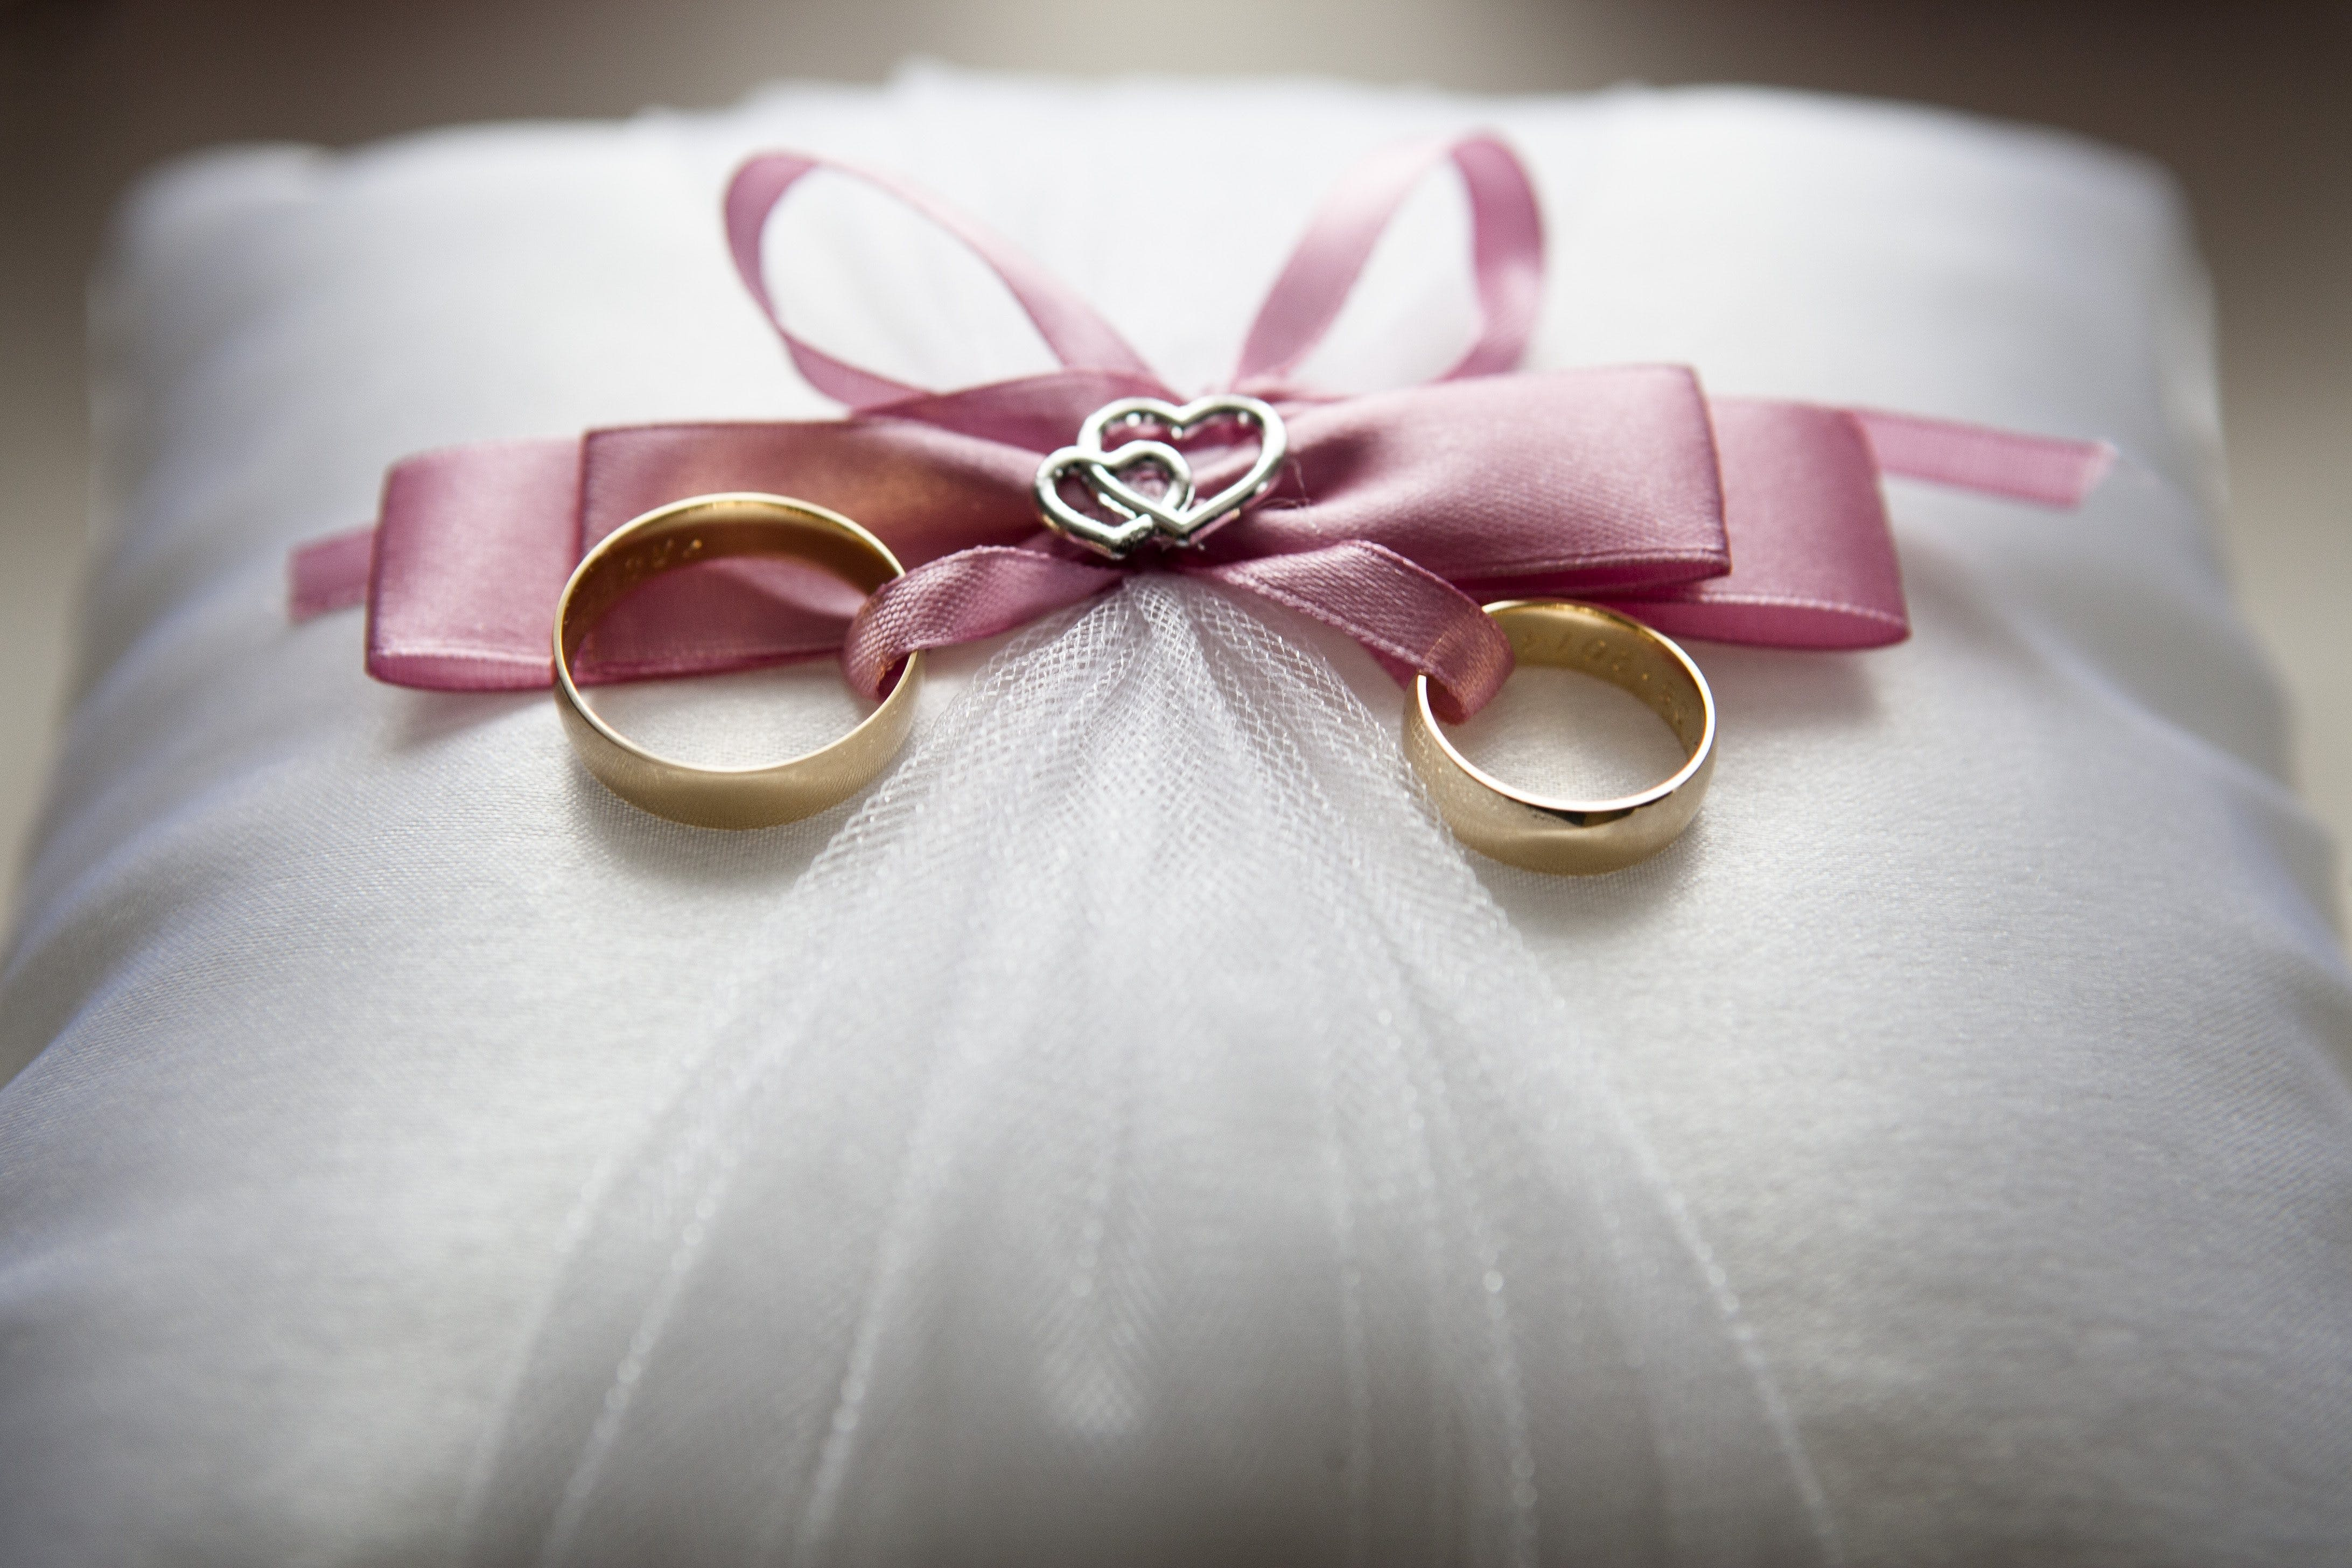 Selective Focus Photography of Silver-colored Engagement Ring Set With Pink Bow Accent on Throw Pillow